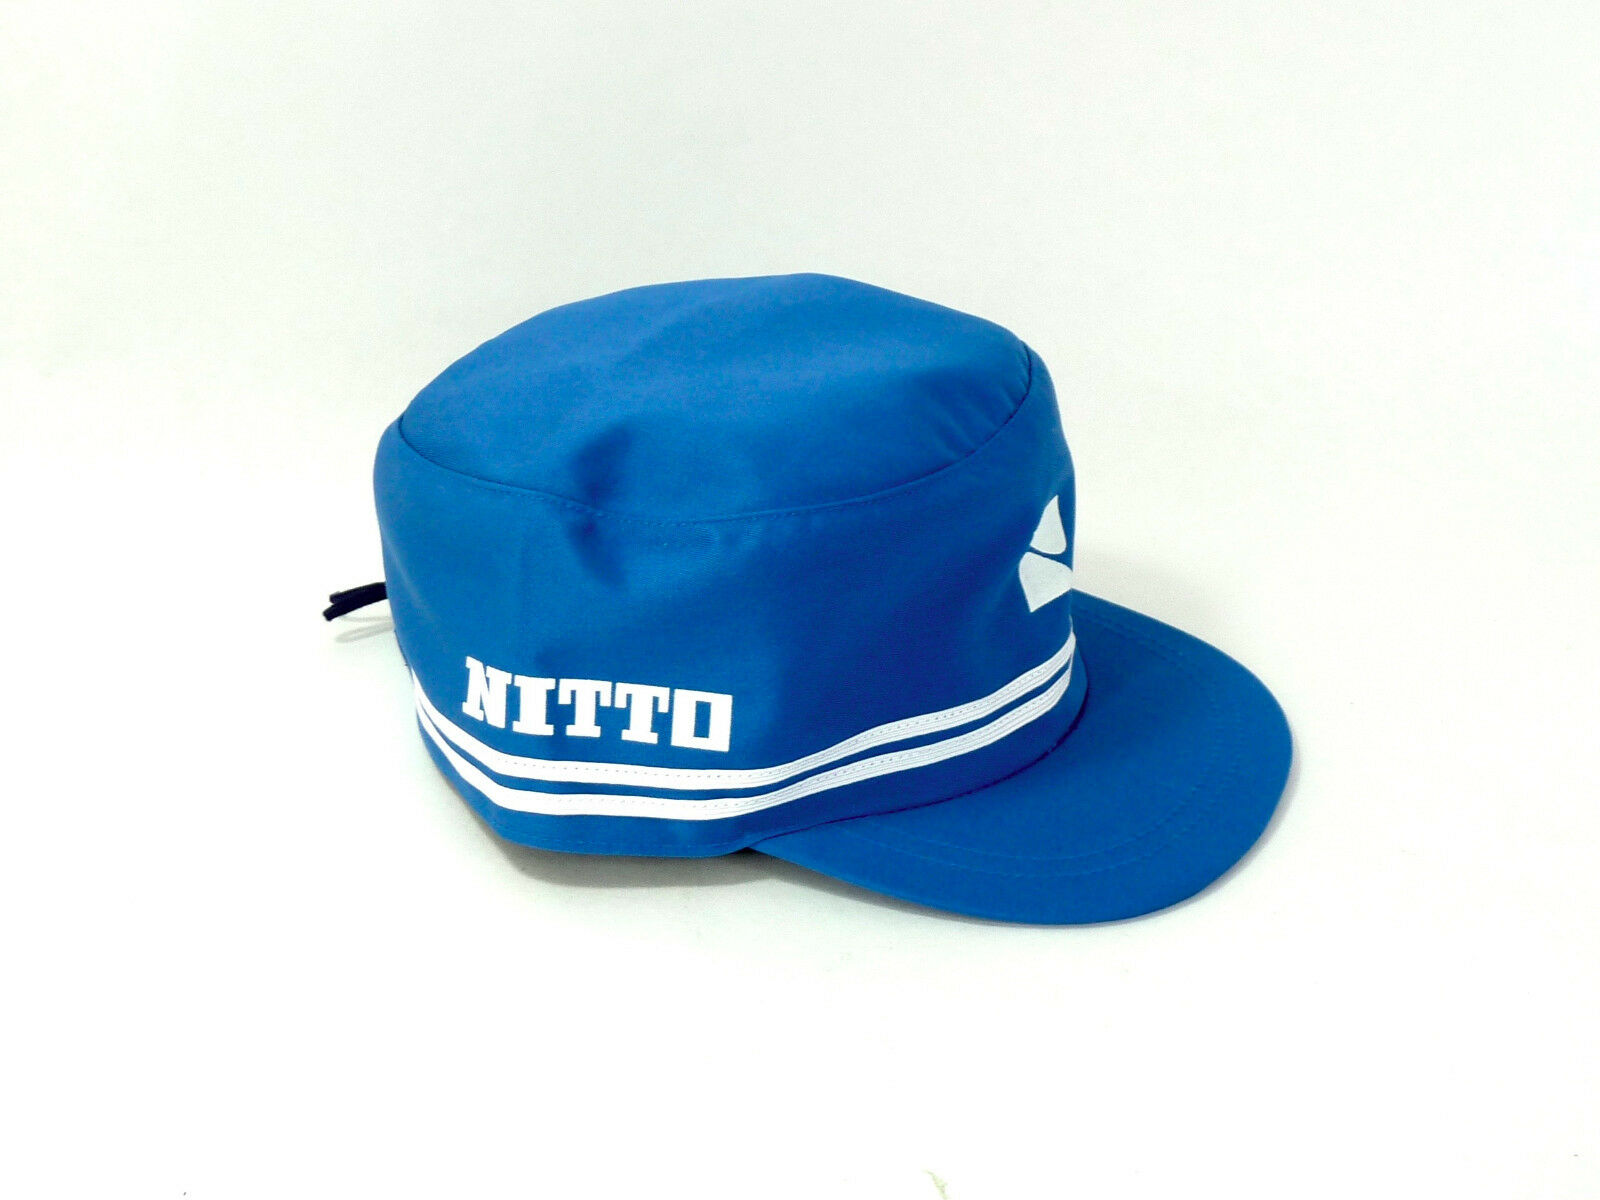 NITTO Factory Workers hat Vintage Bicycle NOS Japan size 62 Large Cap NEW